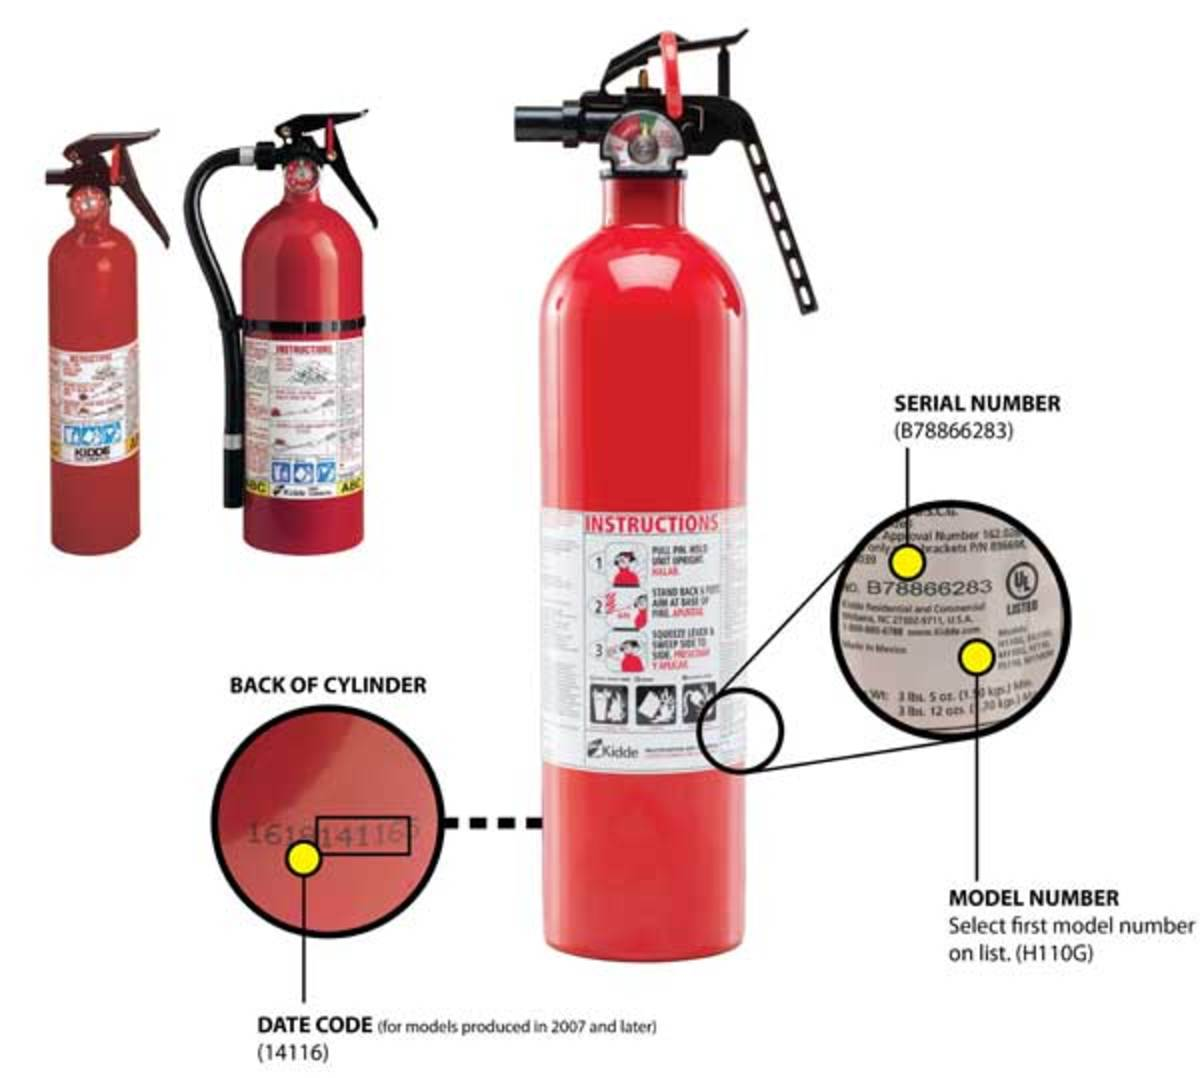 Check the date, serial number and model number to see if your fire extinguisher is affected by the recall.